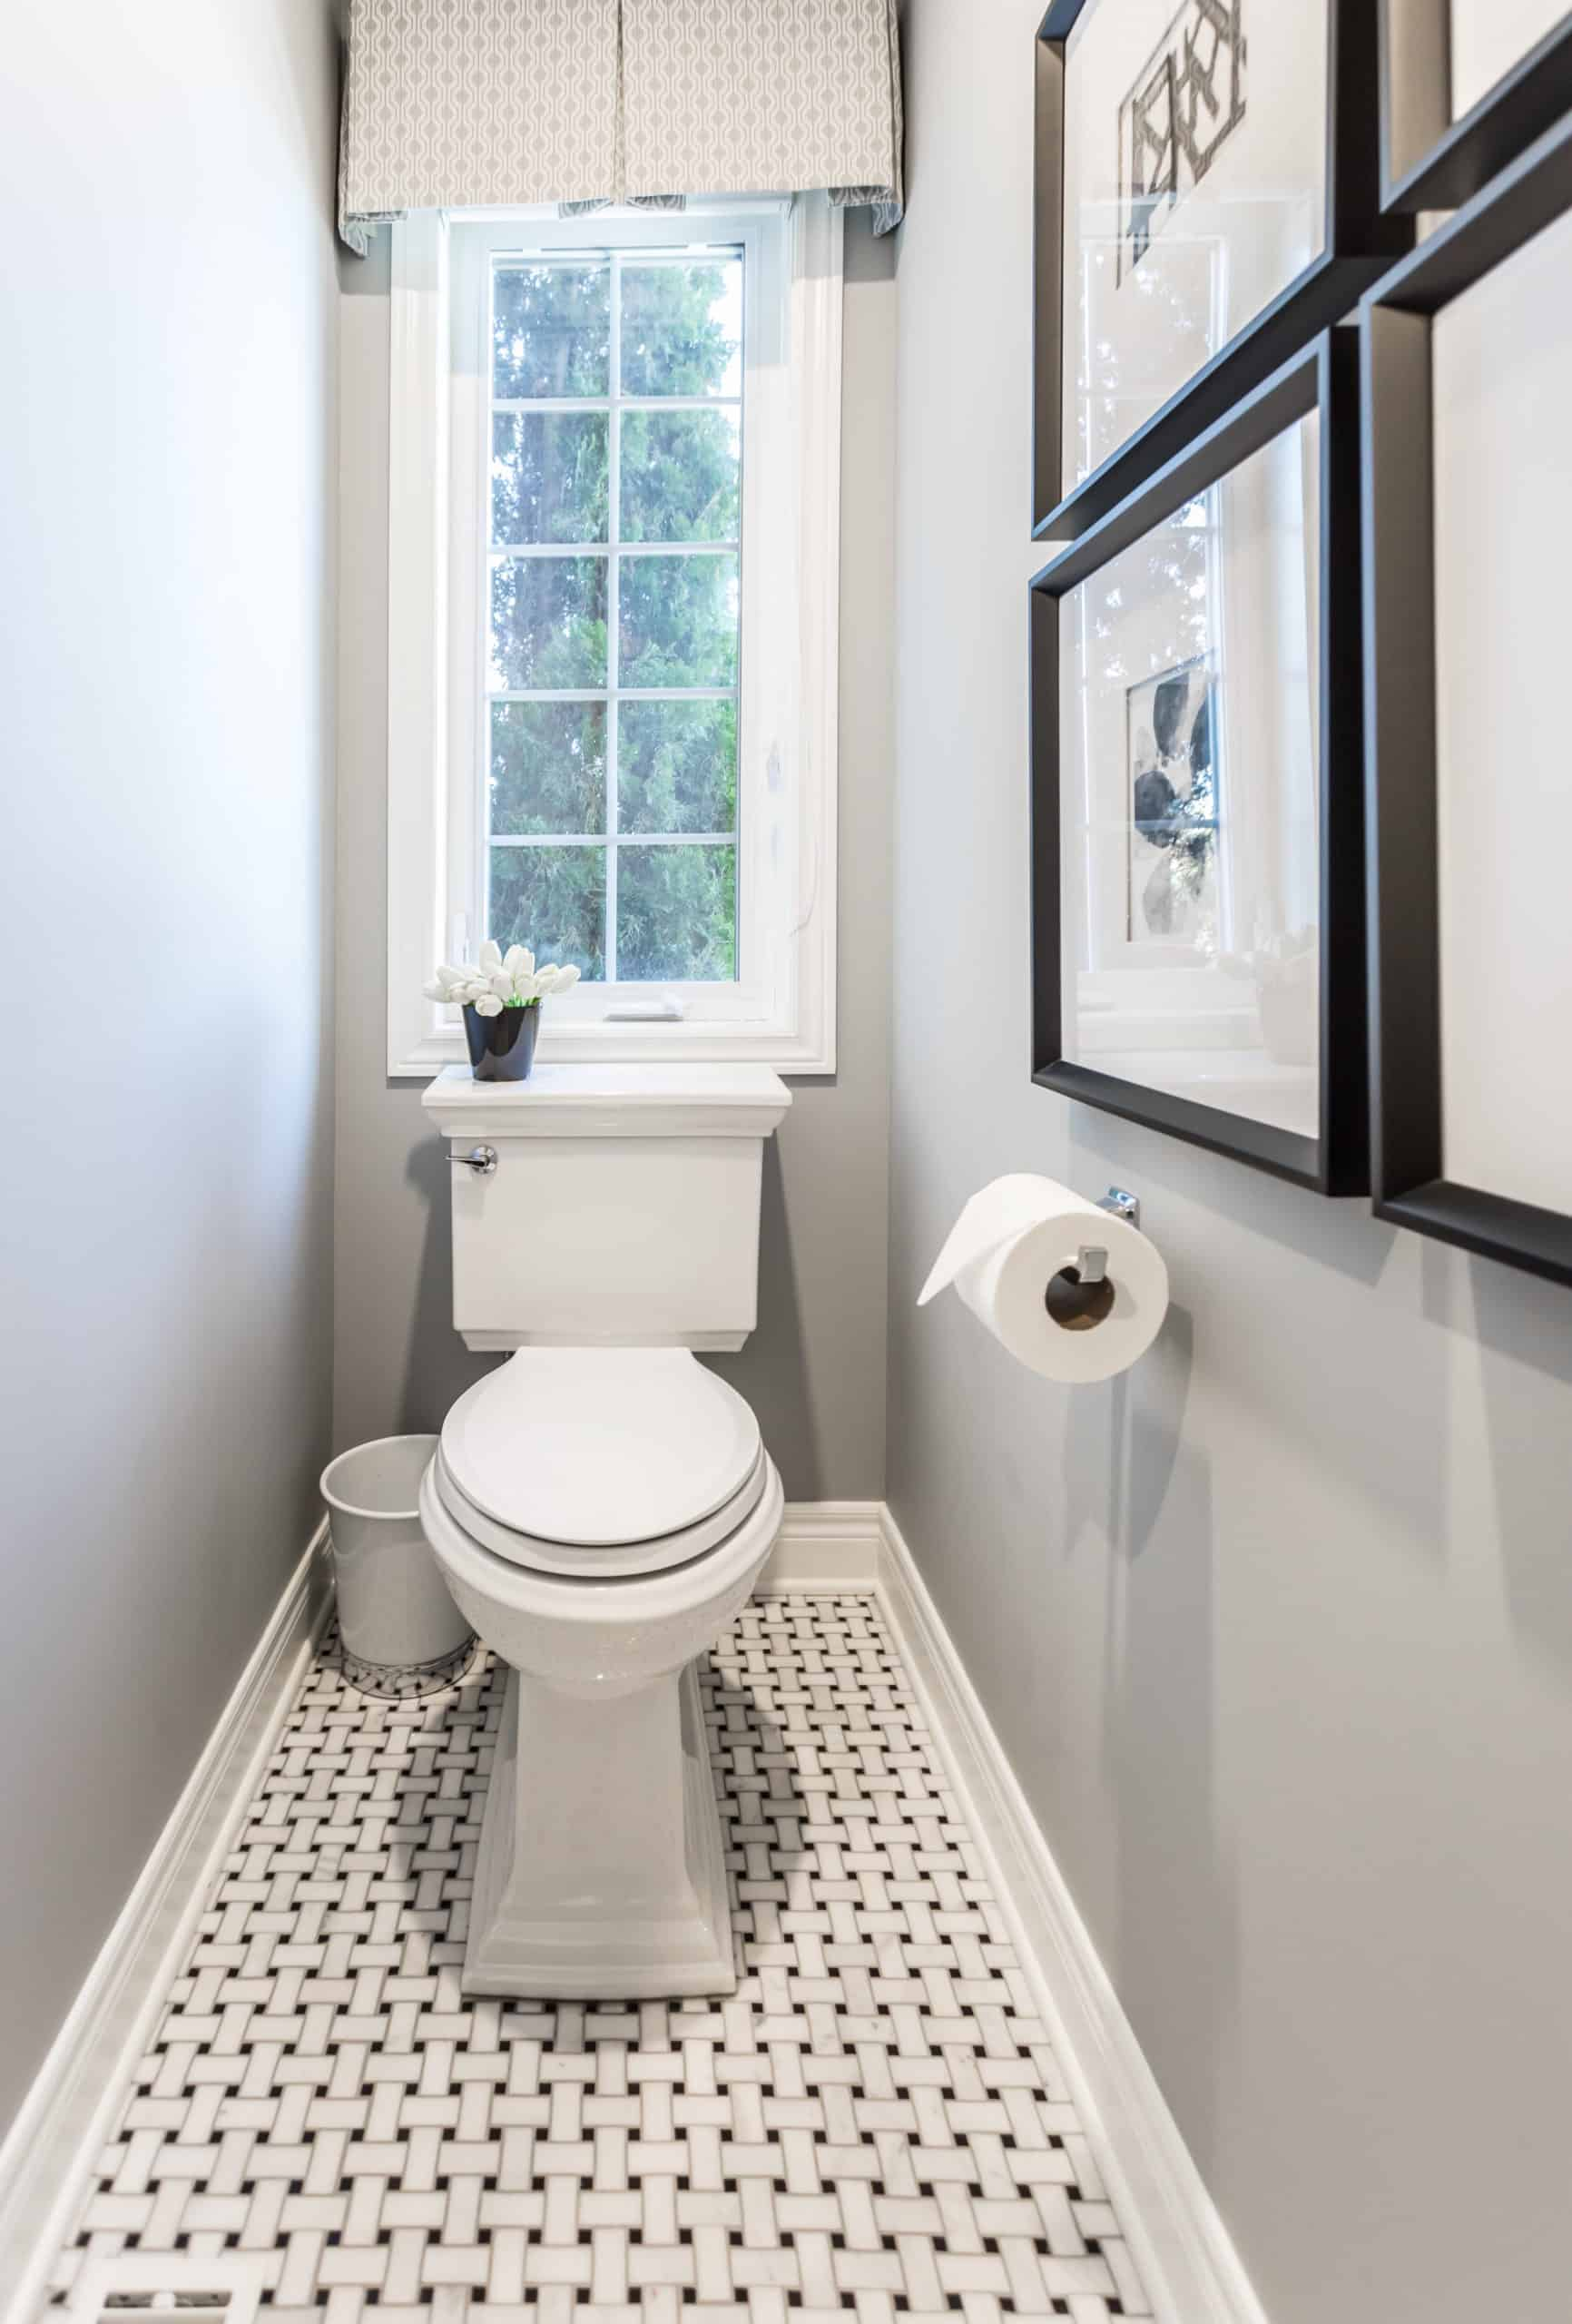 Toilet at the end of a tiny half-bath